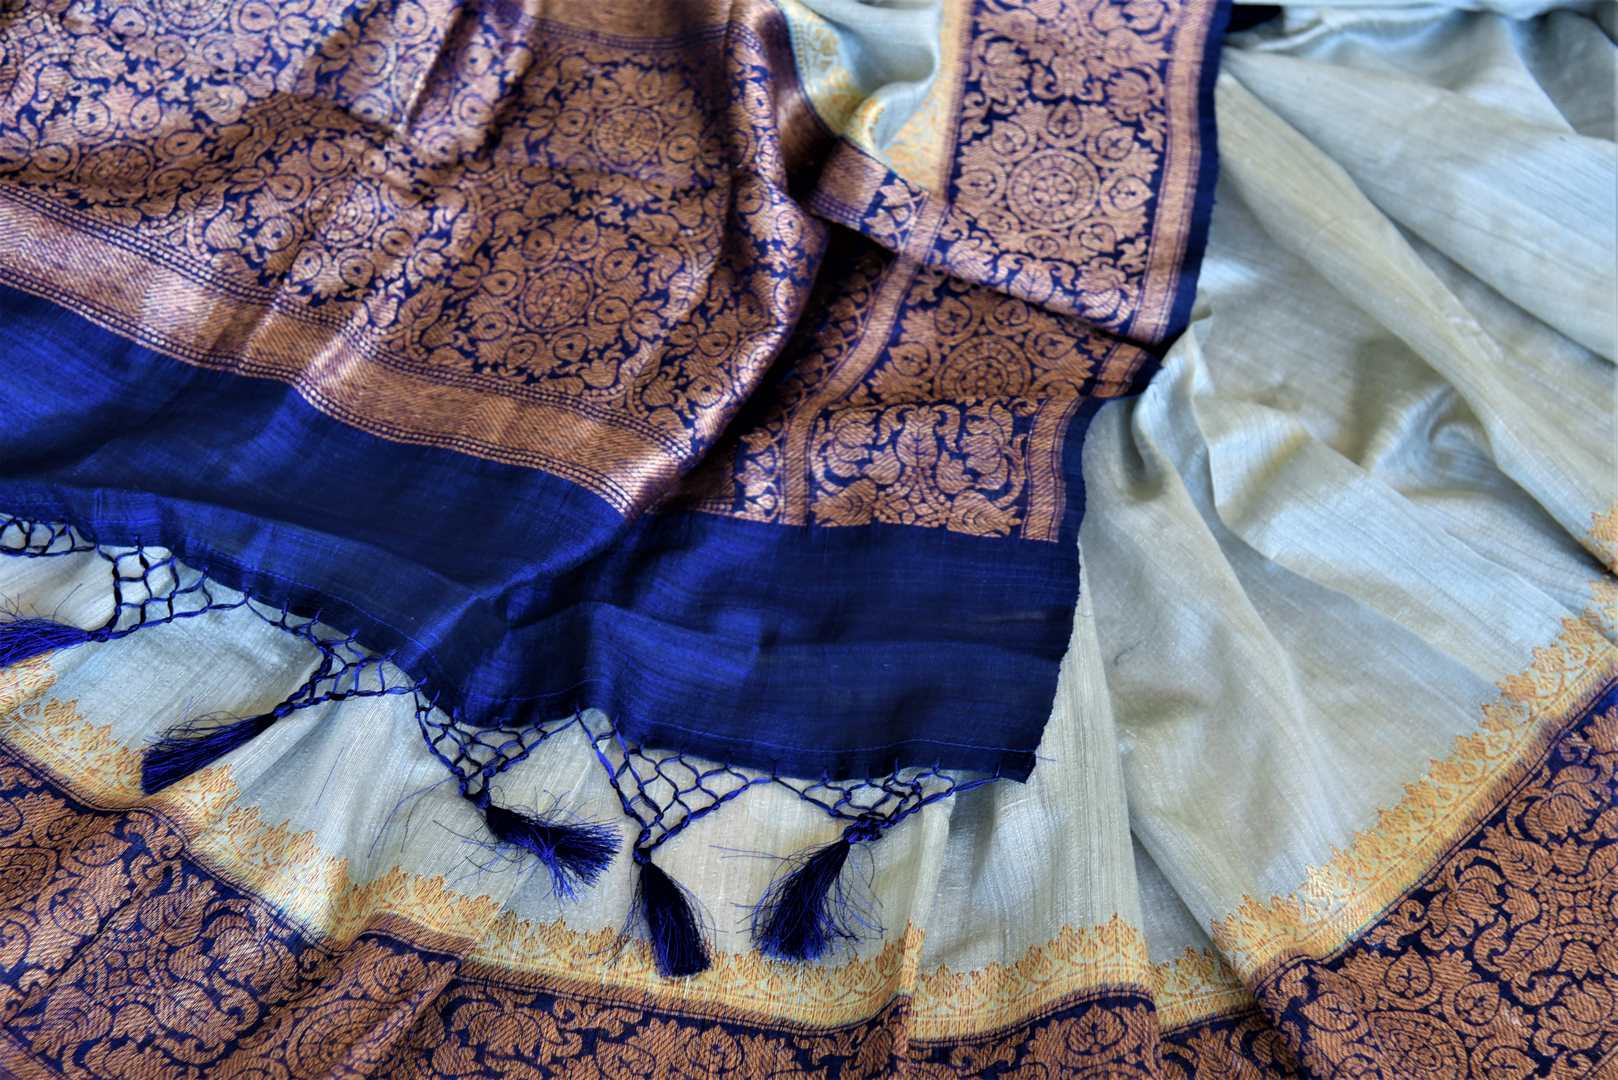 Shop elegant powder blue tussar Benarasi sari online in USA with dark blue antique zari border. Keep your ethnic style updated with latest designer saris, handloom sarees, pure silk sarees from Pure Elegance Indian fashion store in USA.-details